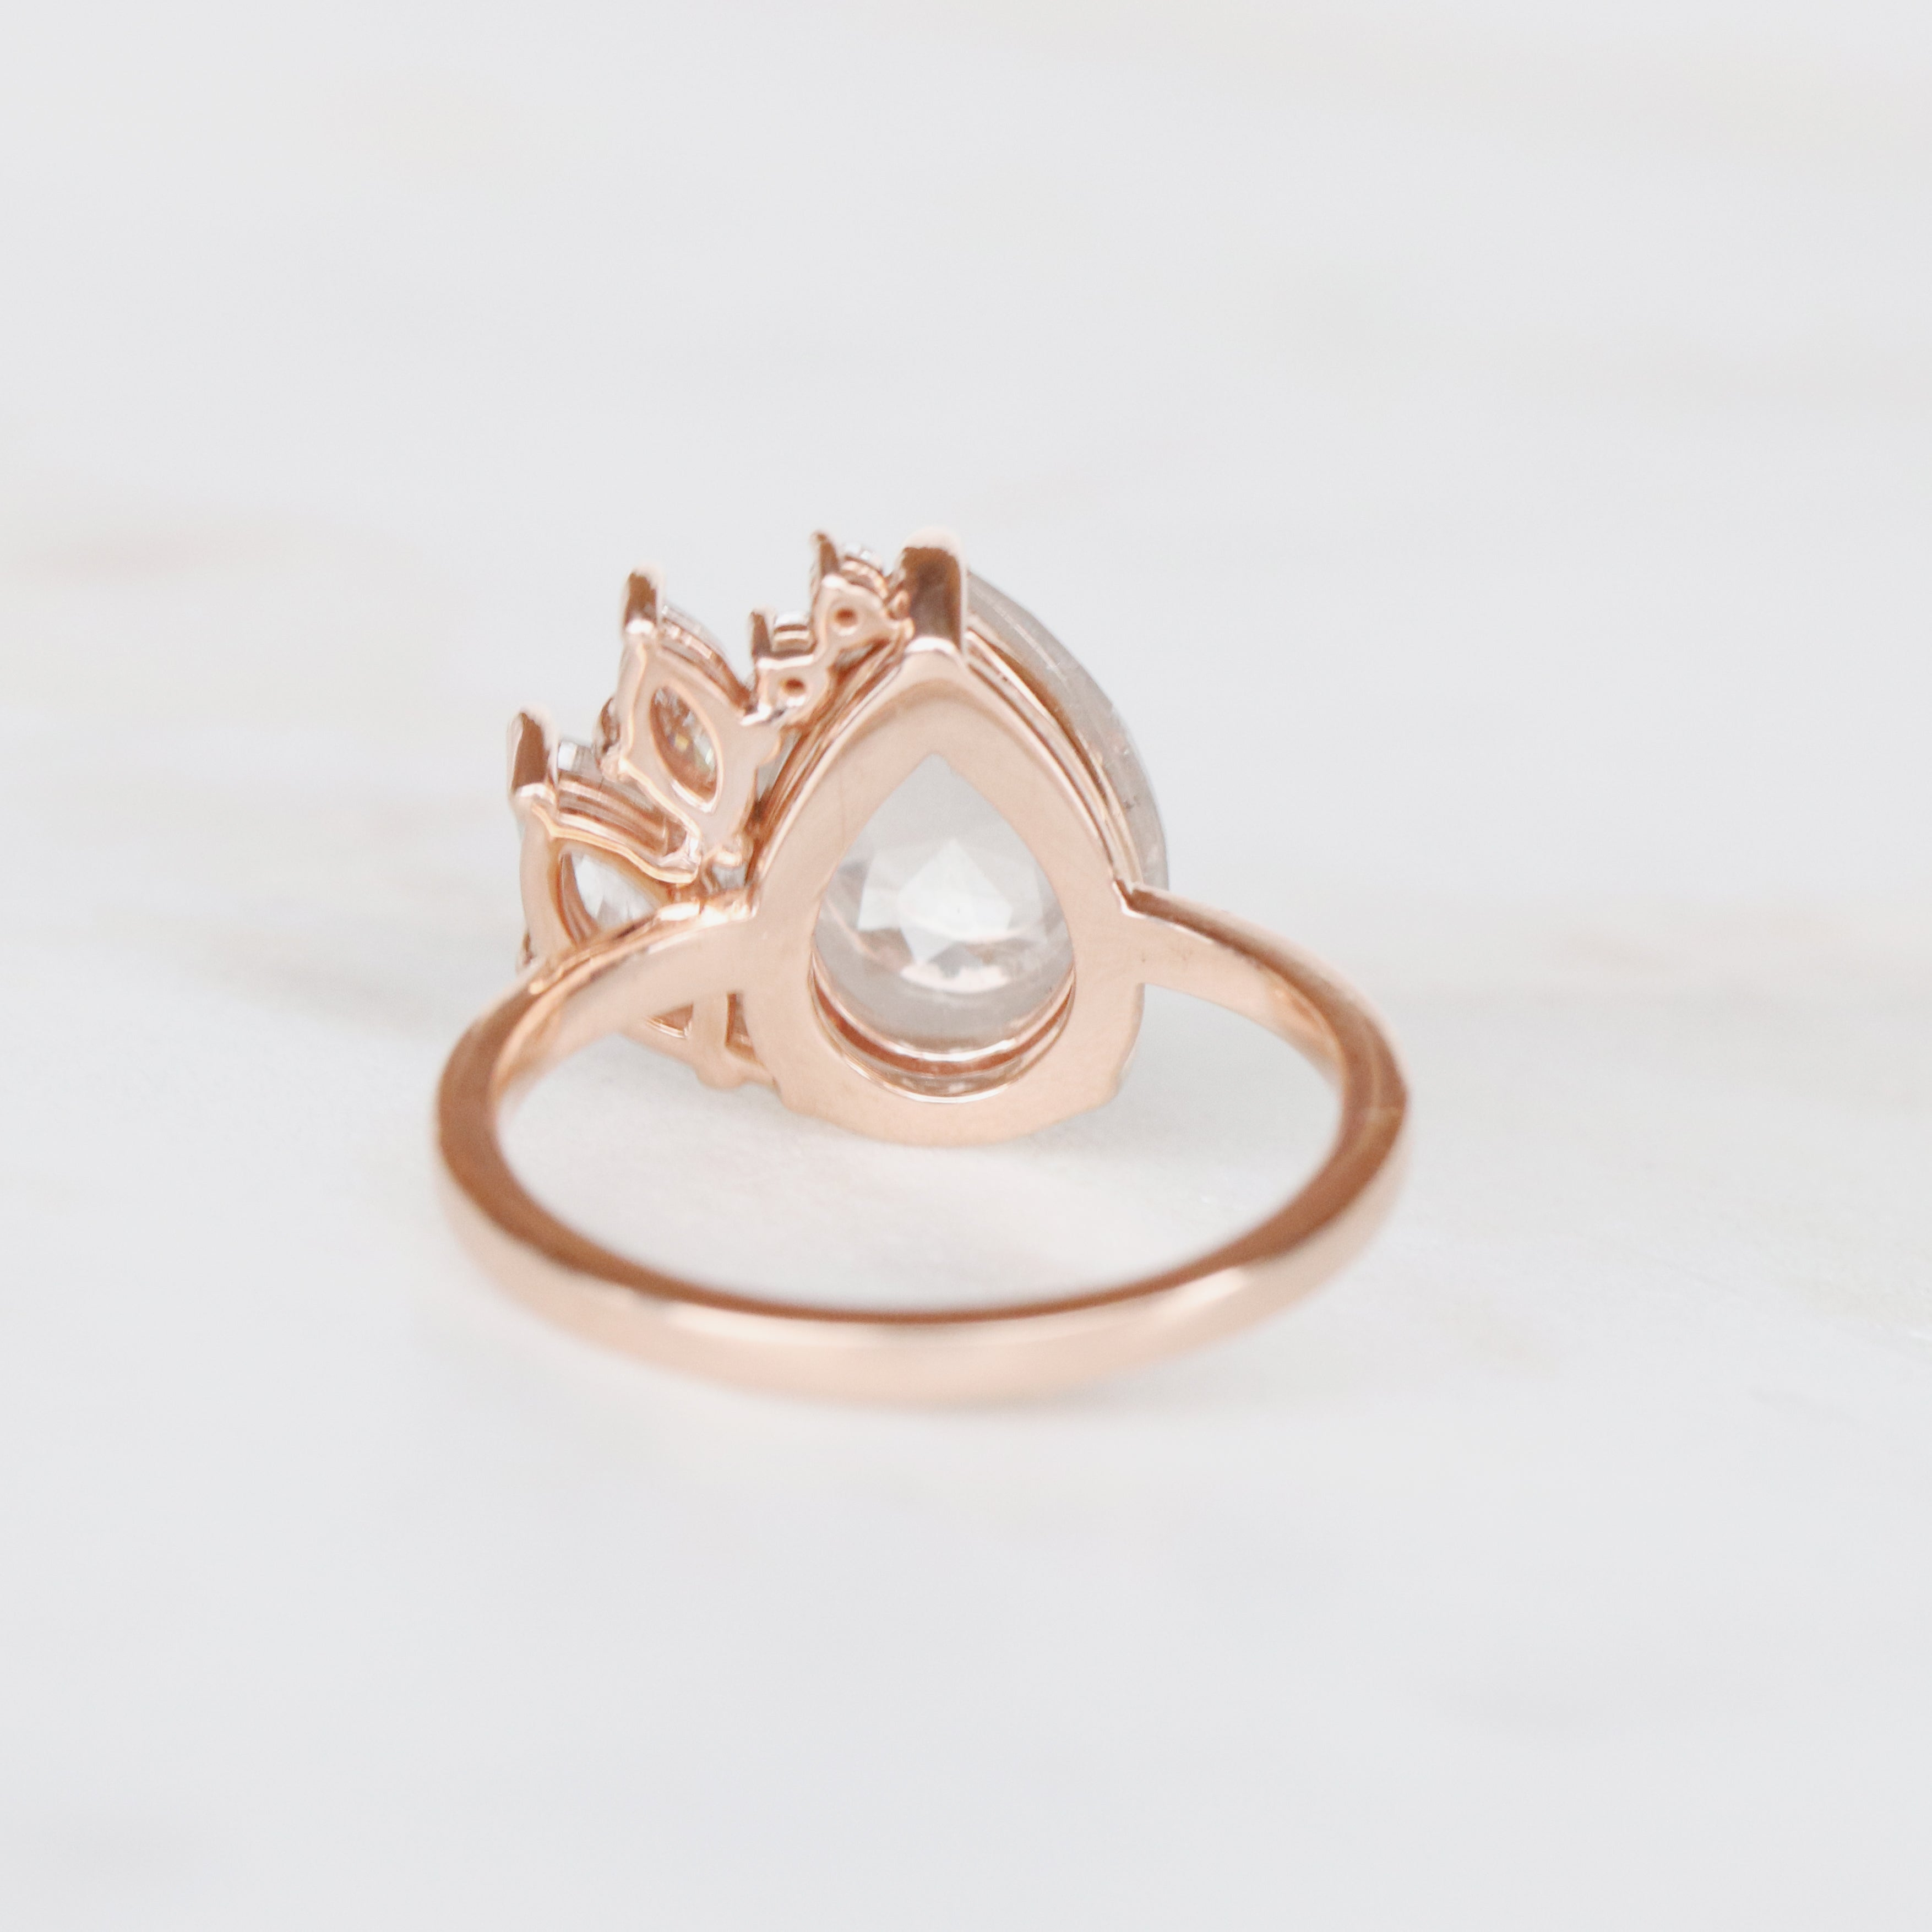 Lilith Pear Cluster Ring with Misty White Diamonds in 14k Rose Gold - Ready to Size and Ship - Salt & Pepper Celestial Diamond Engagement Rings and Wedding Bands  by Midwinter Co.